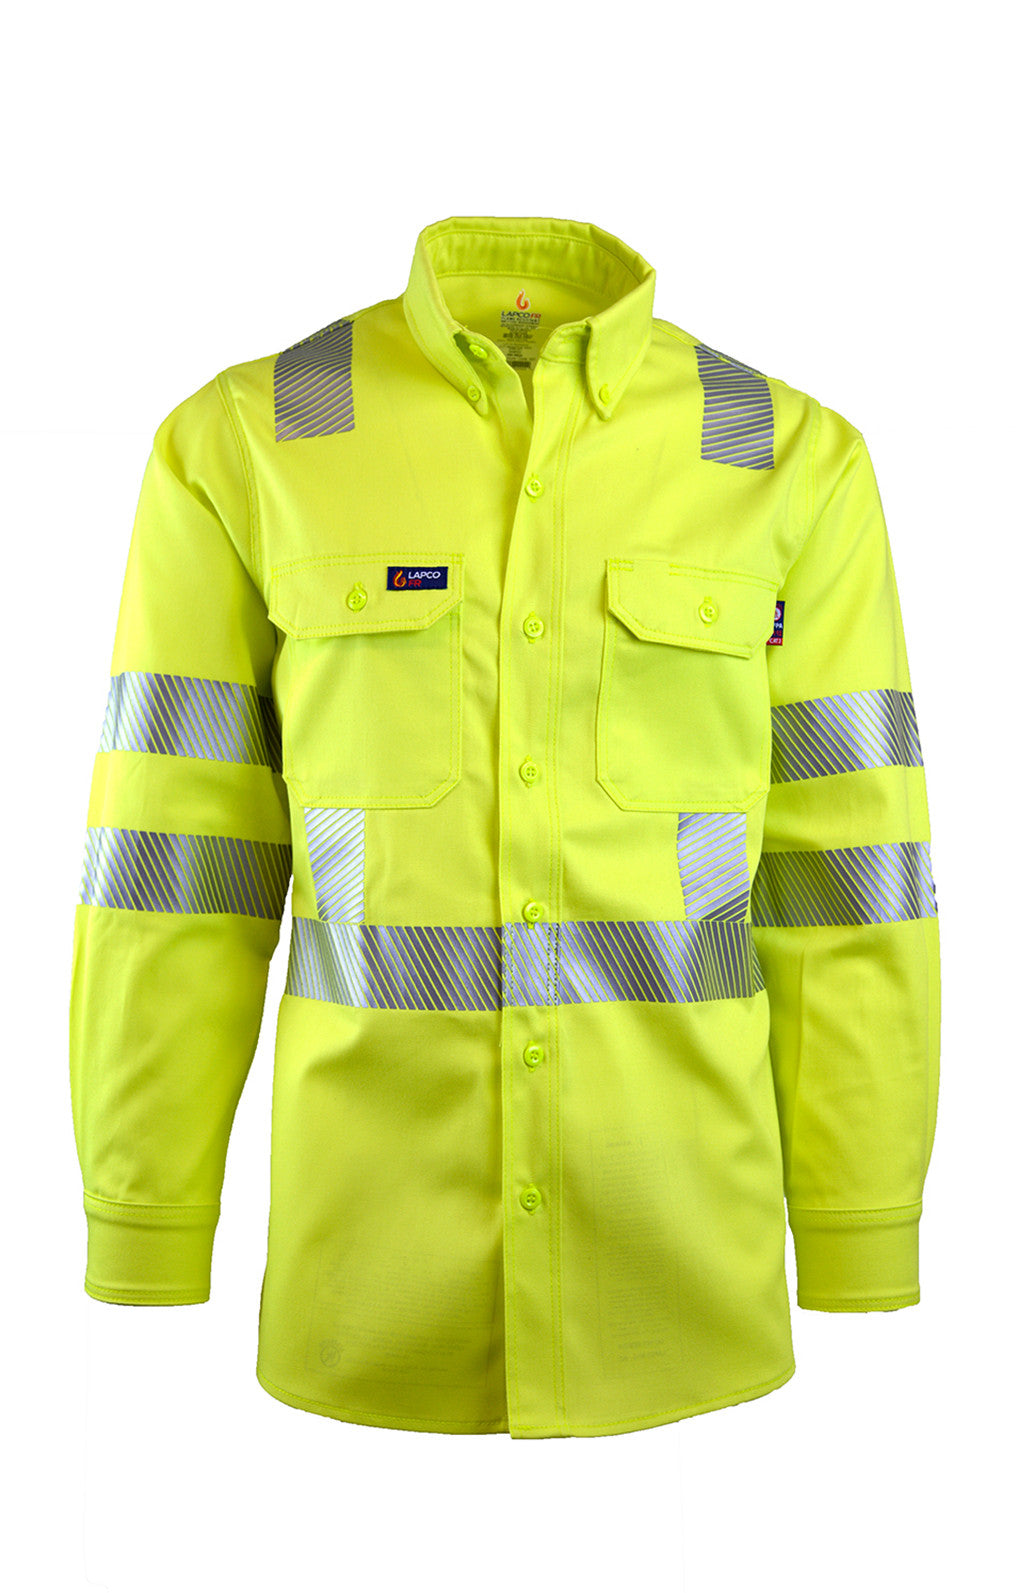 FR Uniform Shirts - Hi-Viz Yellow